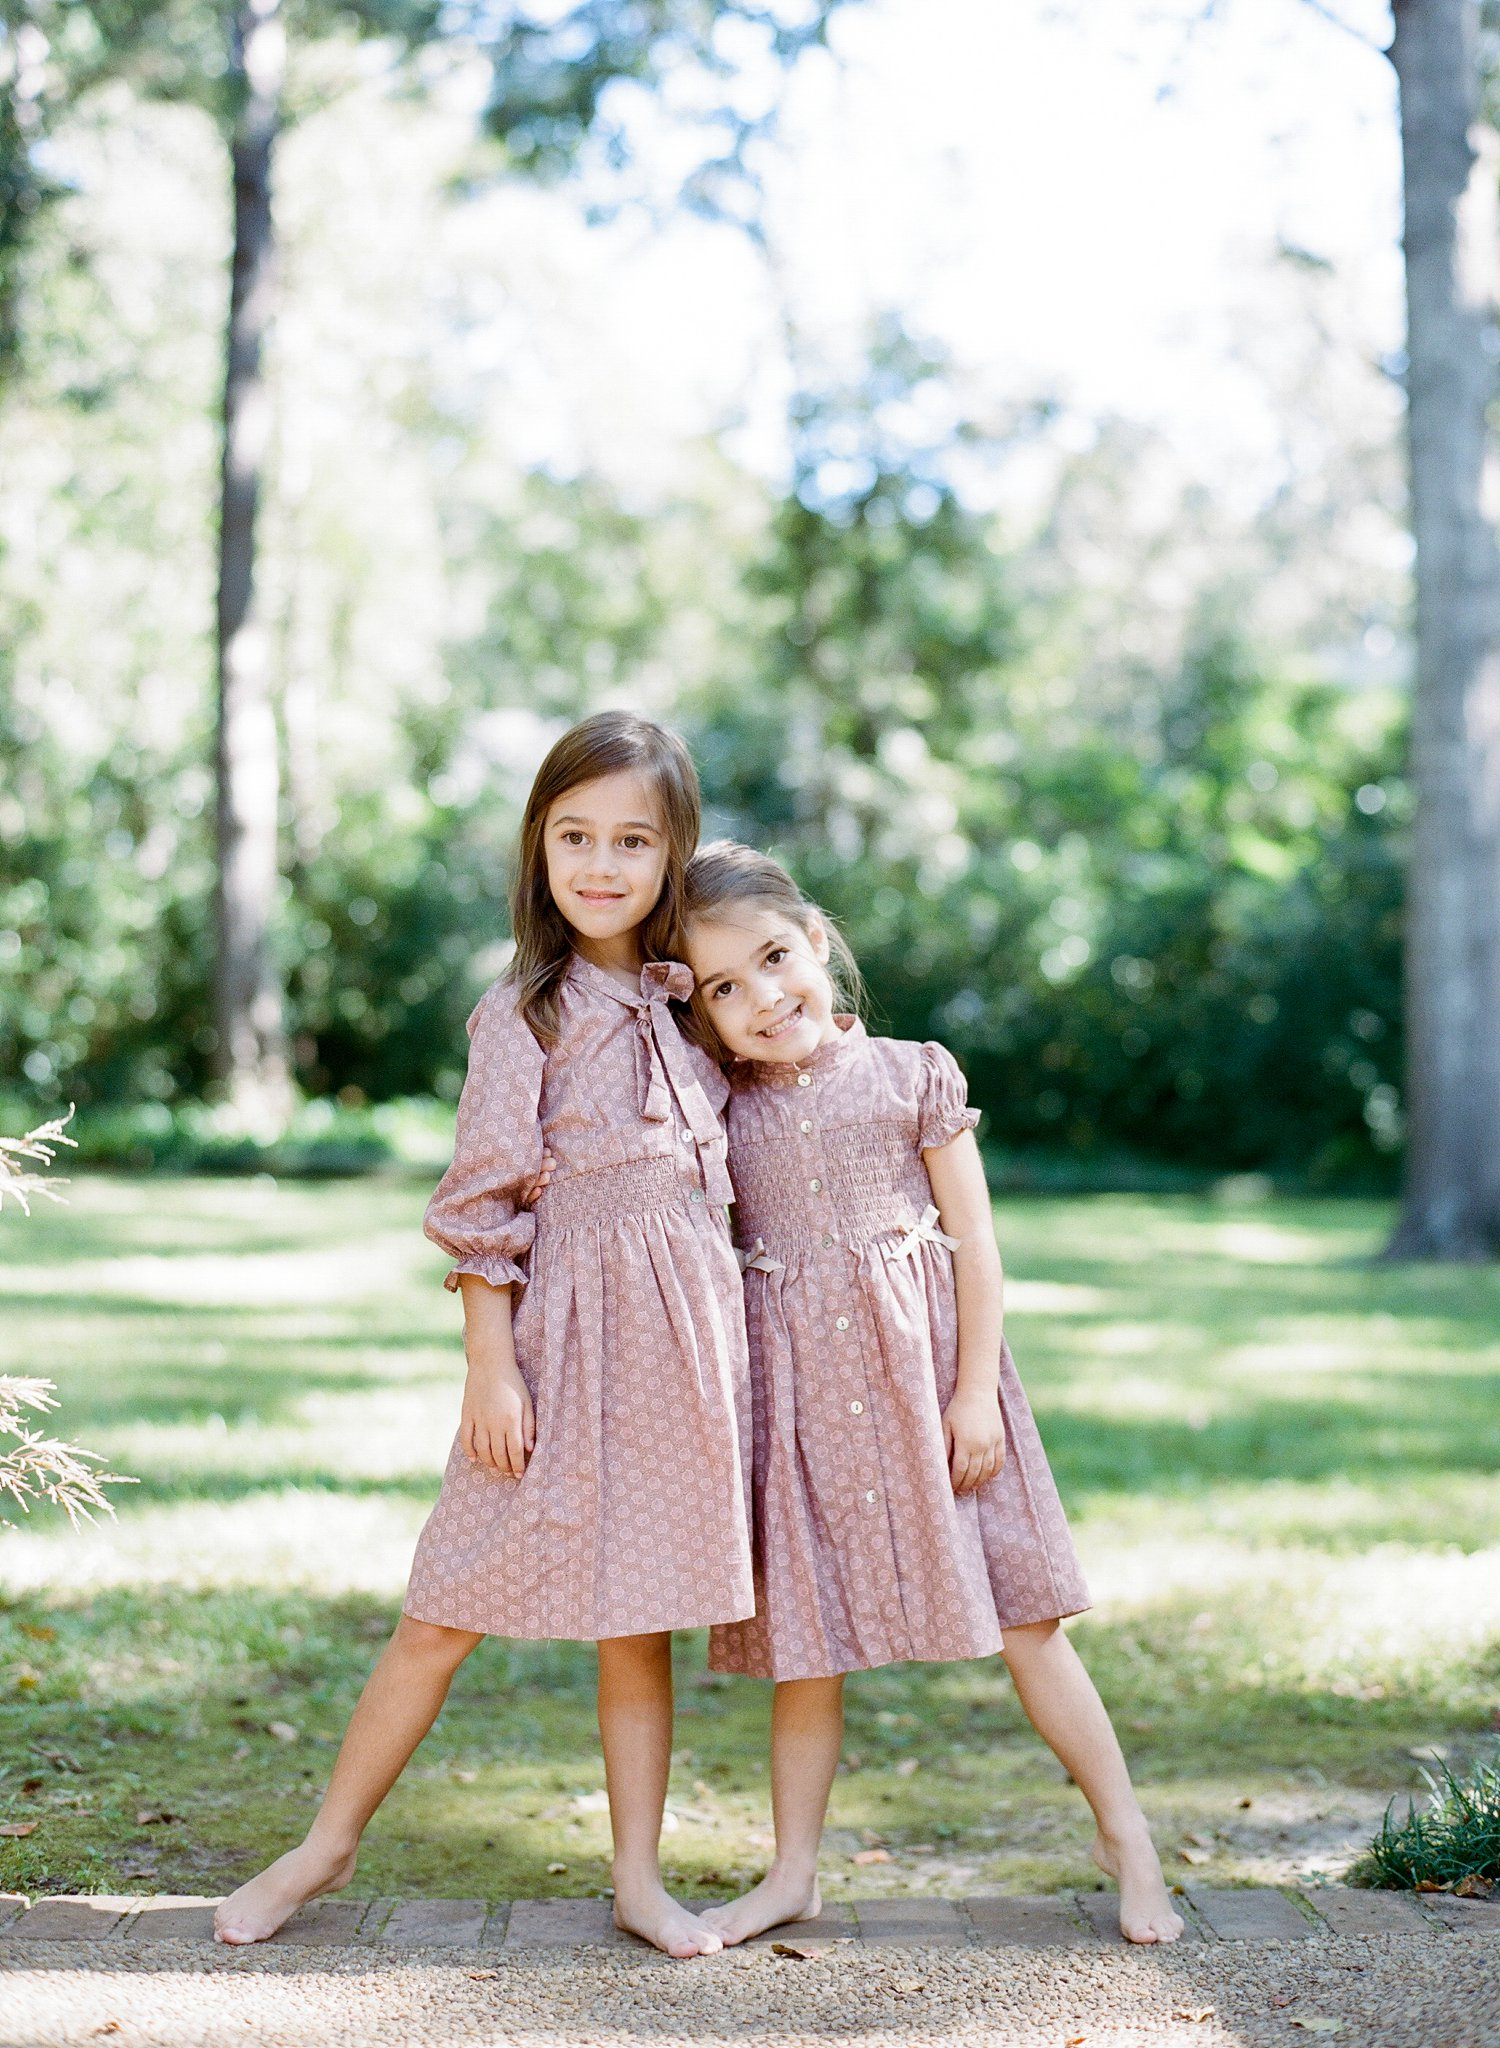 tallahassee family photographer shannon griffin photography_0042.jpg